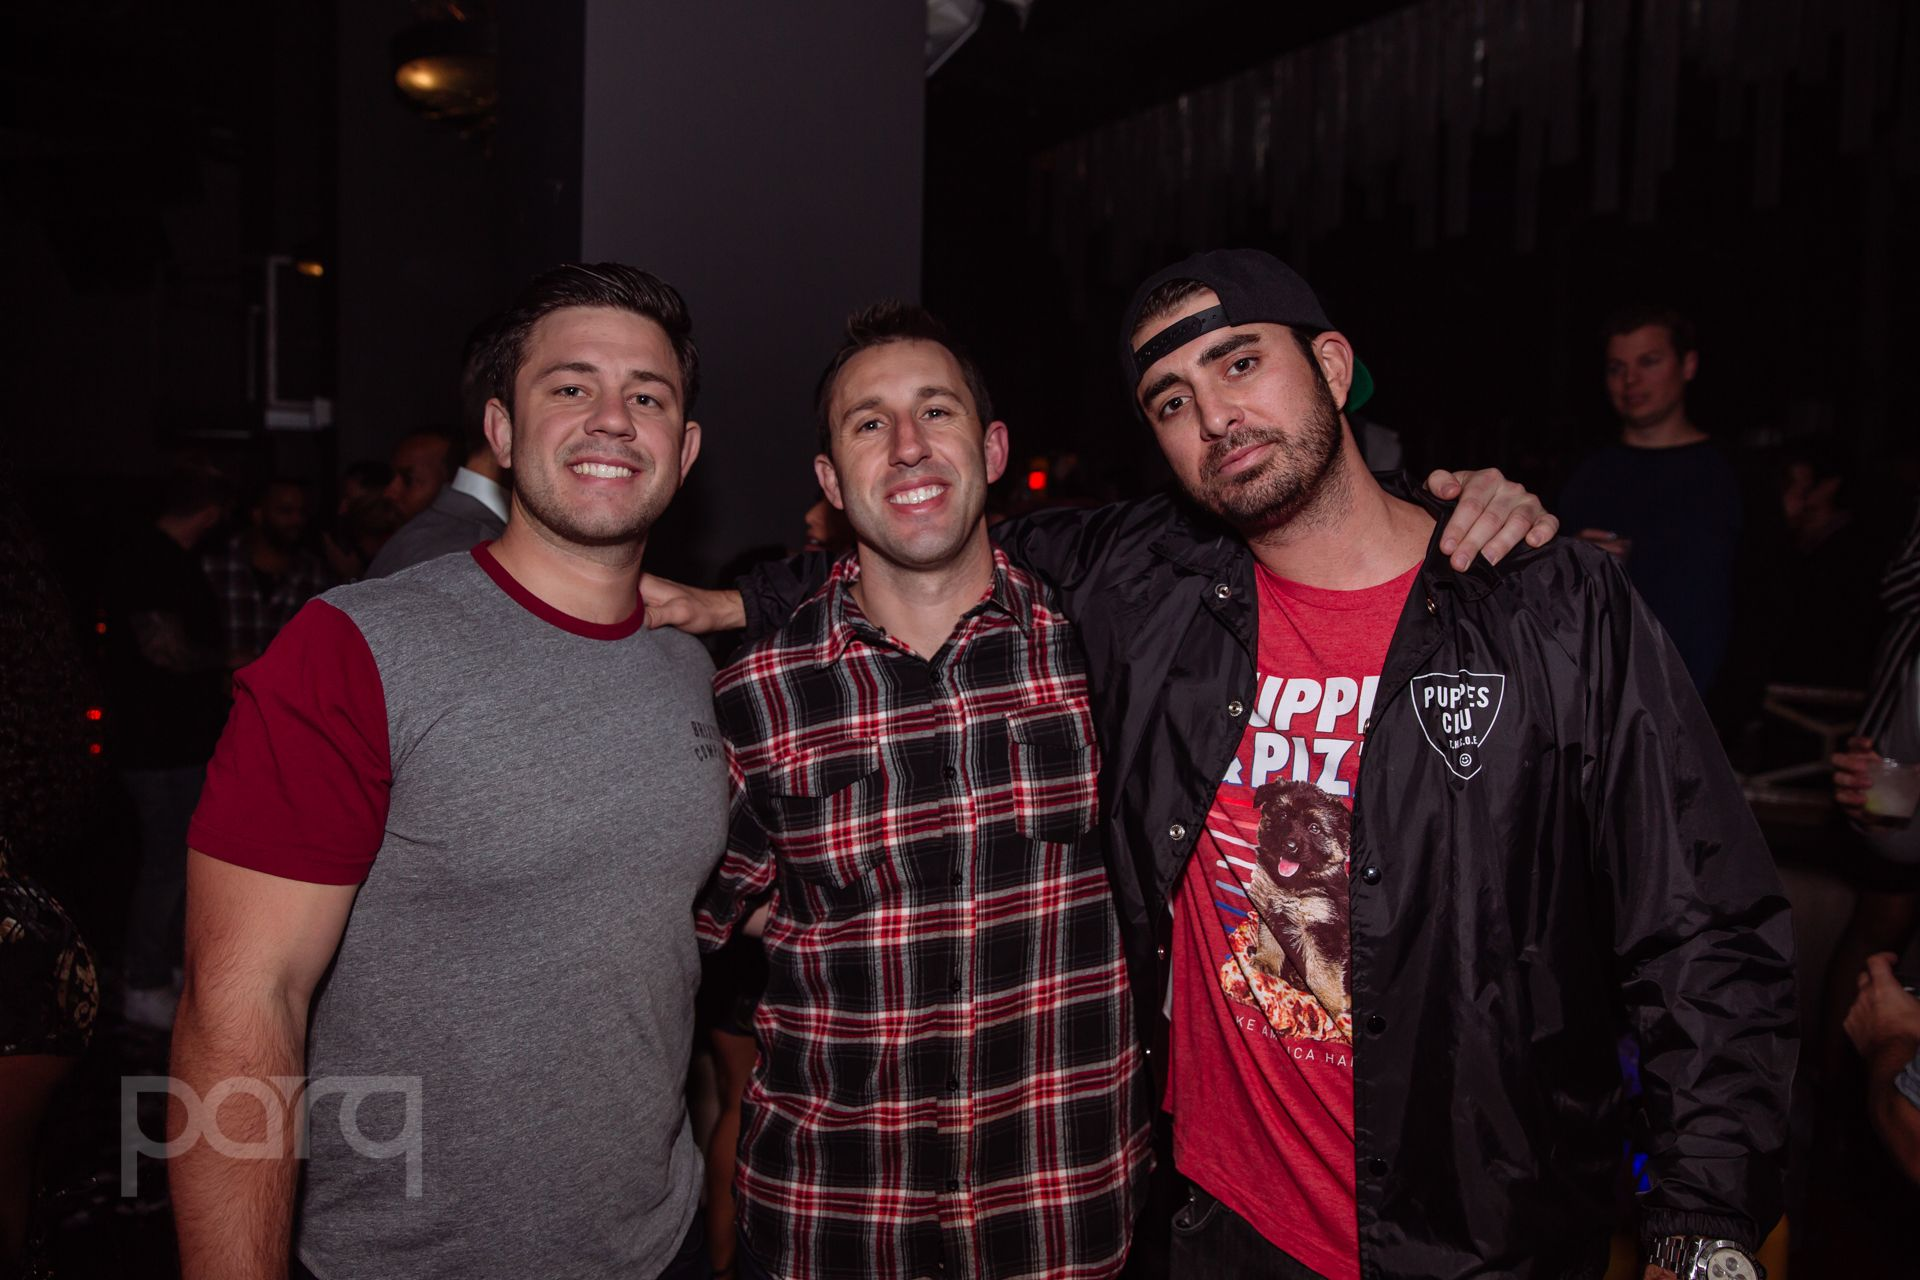 12.16.17 Parq - Zoo Funktion-33.jpg